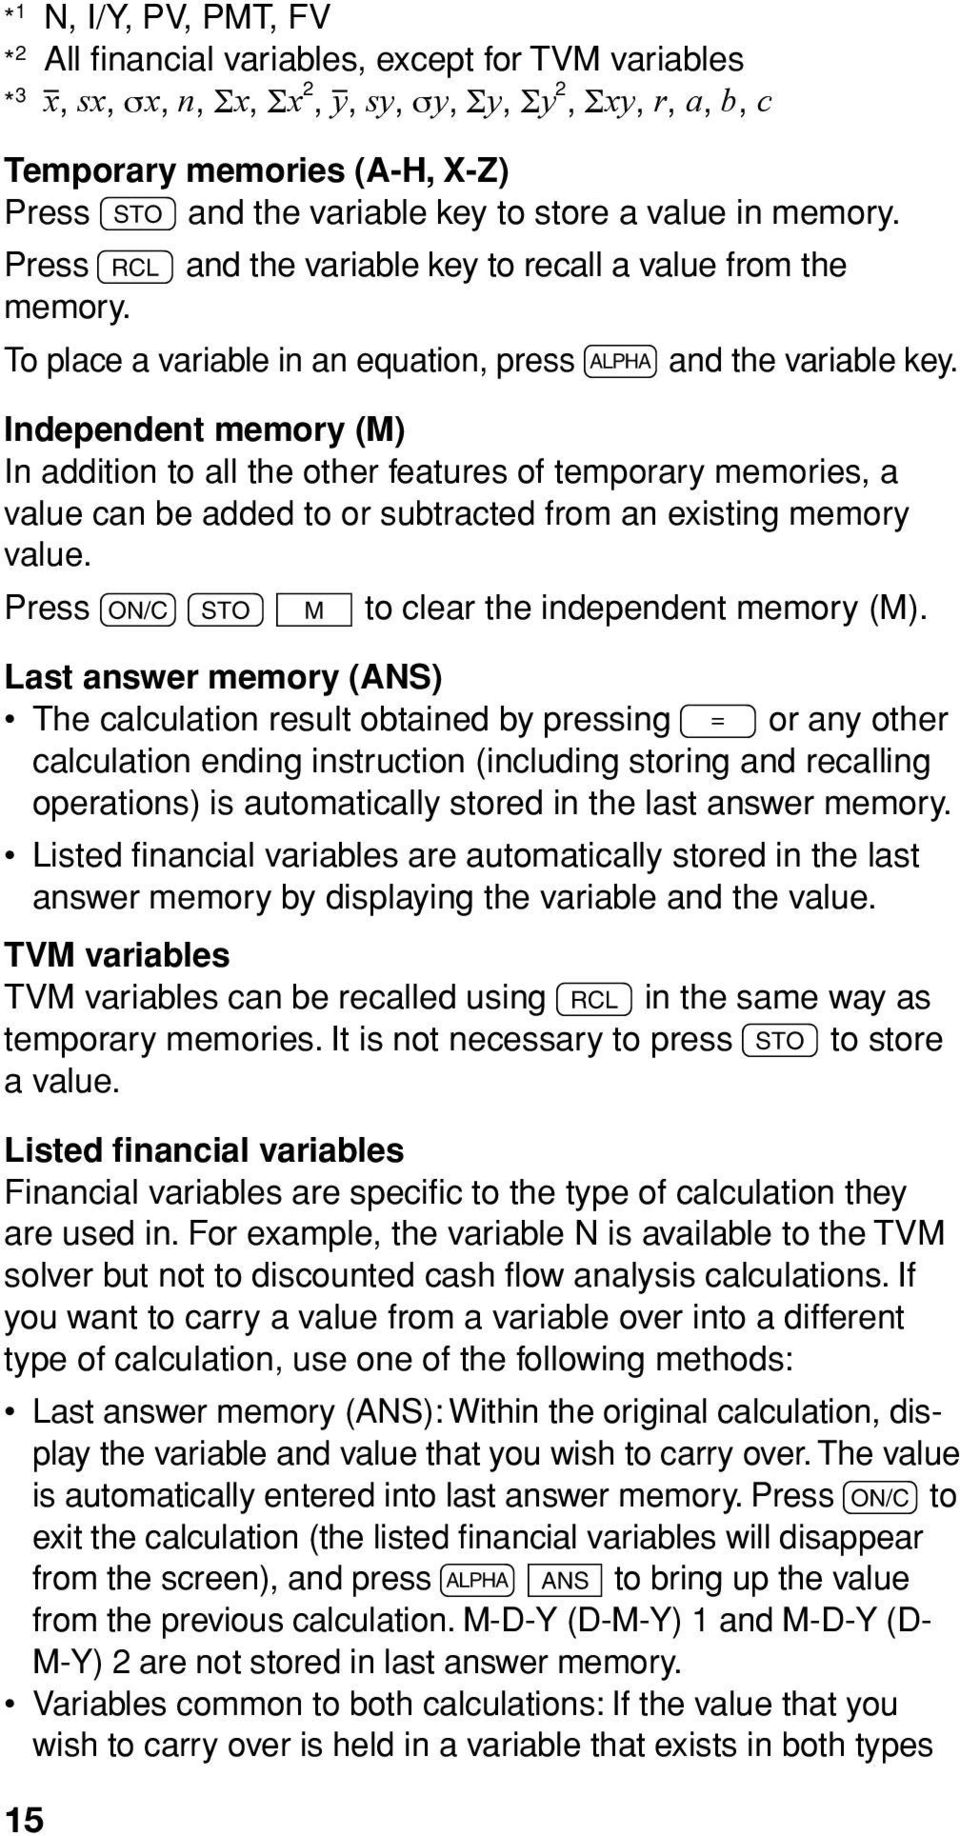 Independent memory (M) In addition to all the other features of temporary memories, a value can be added to or subtracted from an existing memory value.